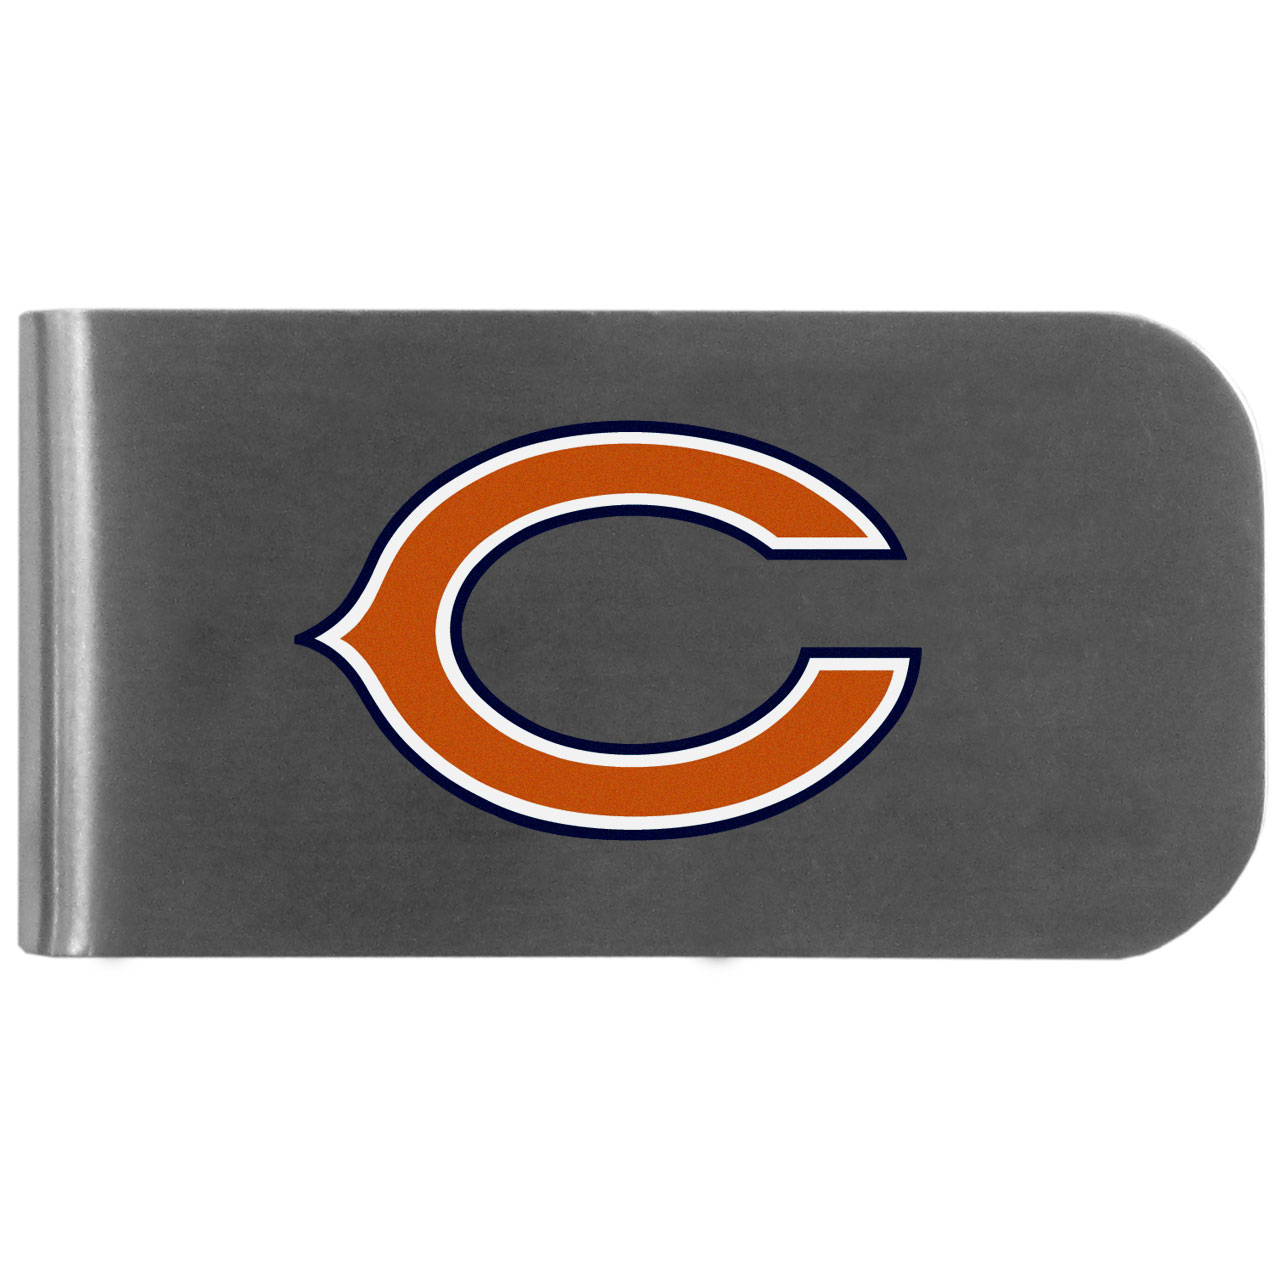 Chicago Bears Logo Bottle Opener Money Clip - This unique money clip features a classic, brushed-metal finish with a handy bottle opener feature on the back. The clip has the Chicago Bears logo expertly printed on the front of the clip.